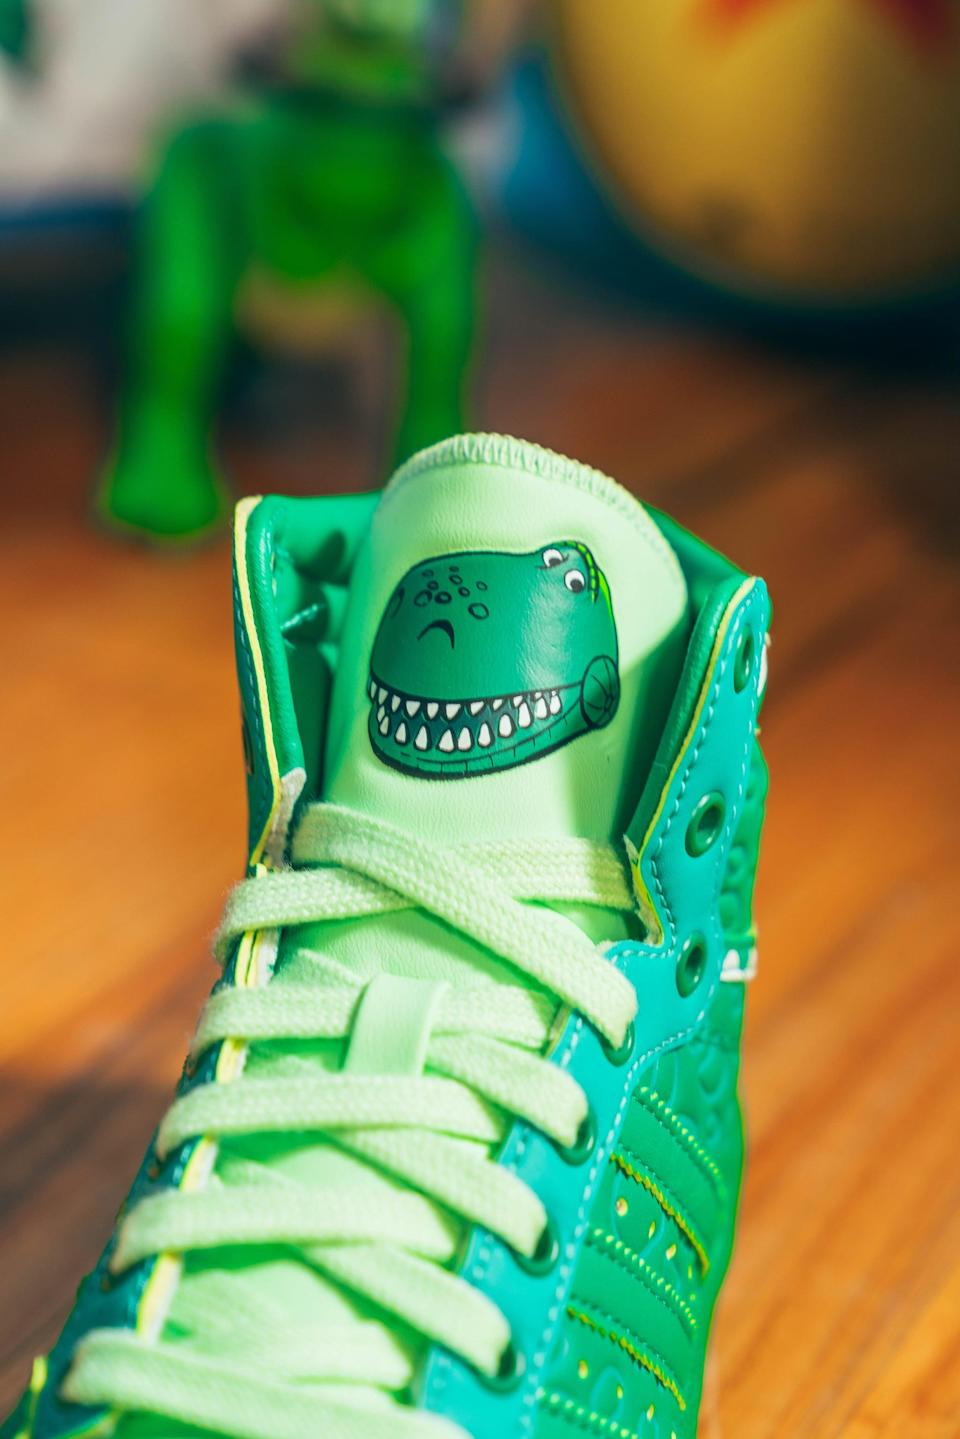 <p>We love the sweet detail on the Adidas Rex x Top Ten Hi Shoes!</p>